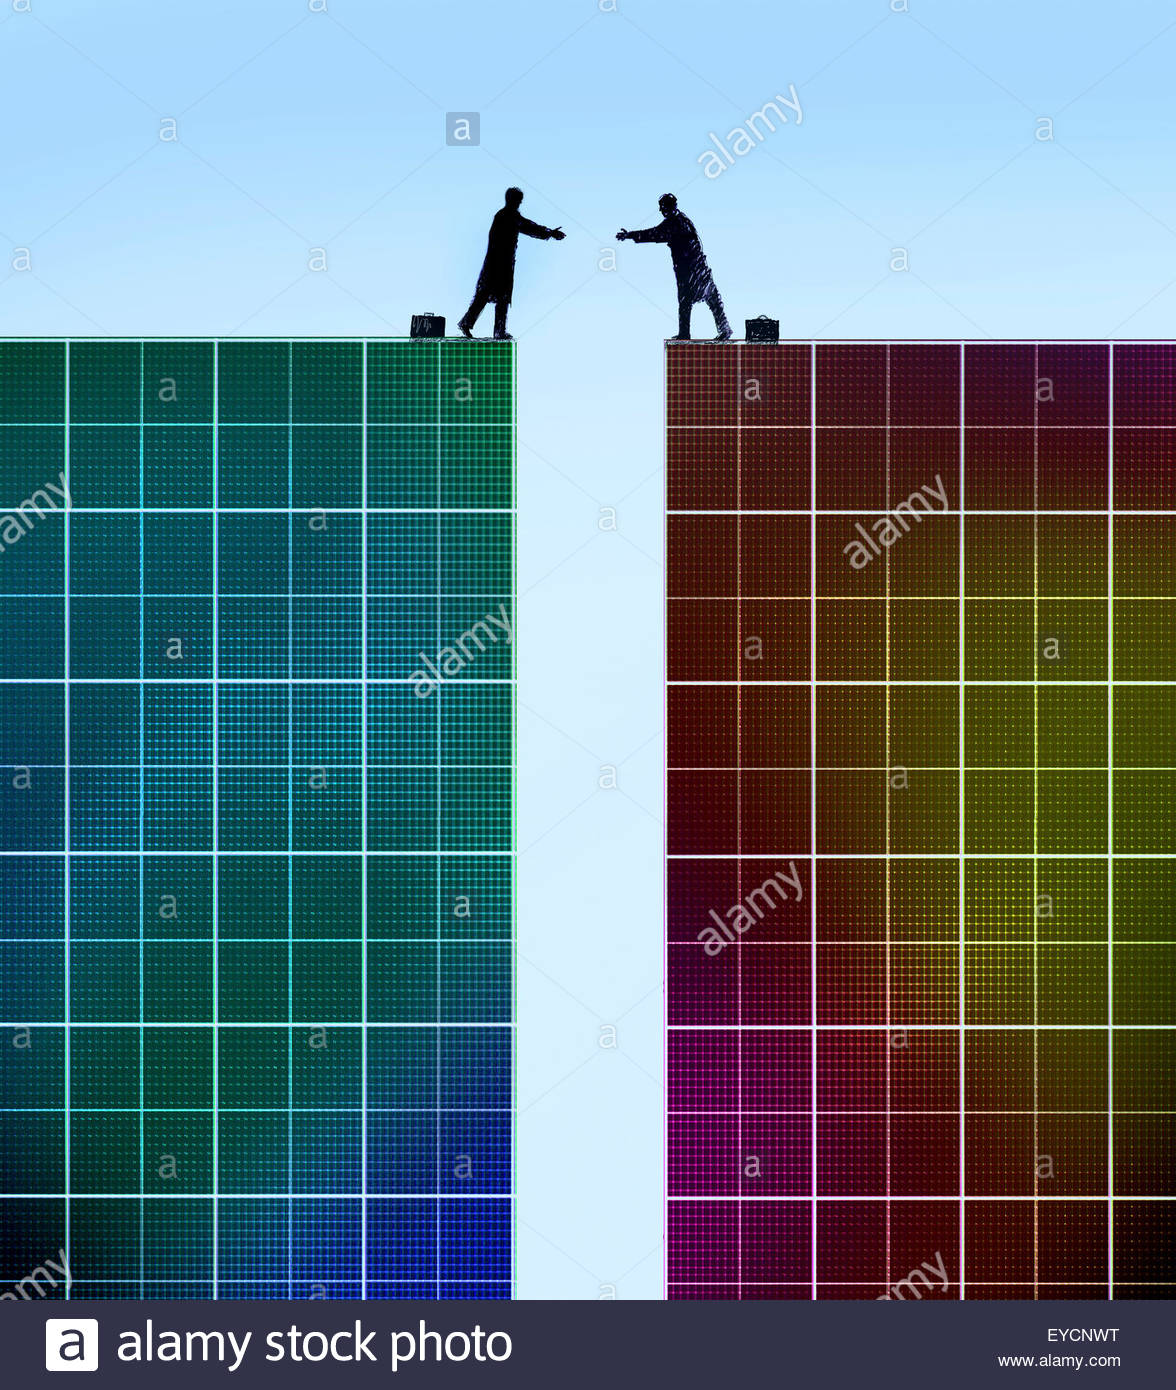 Businessmen reaching to shake hands across gap between two graph paper cliffs - Stock Image